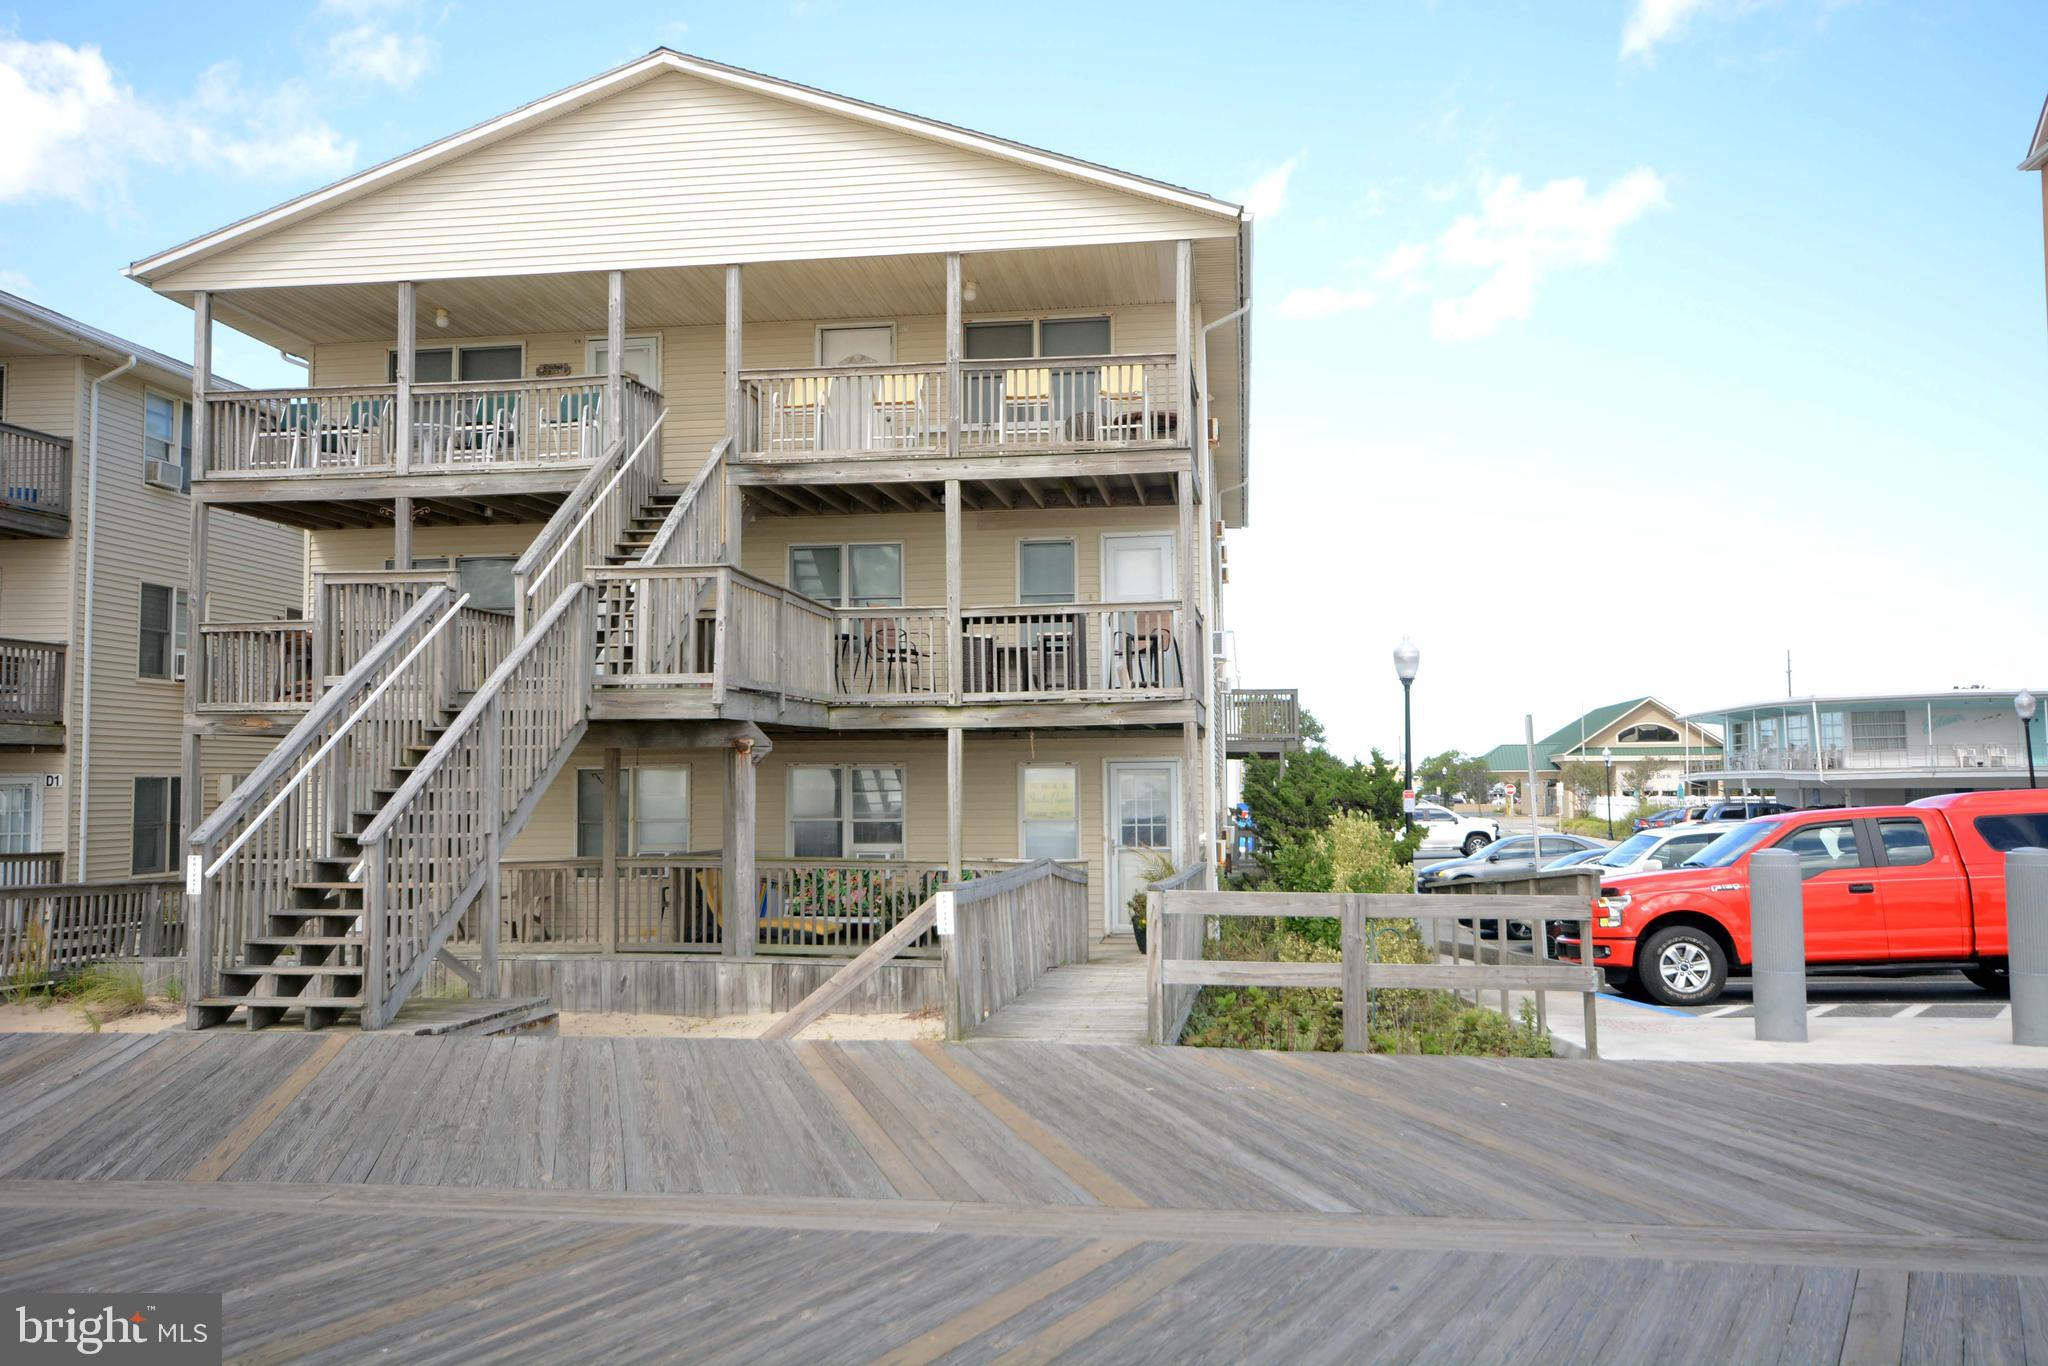 NOT OFTEN YOU GET THE OPPORTUNITY TO GET A FRIST FLOOR CONDO NO THE BOARDWALK  2BD/2BATH. ENJOY THIS OCEANFRONT/BOARDWALK FRONT DIRECT ACCESS TO THE BEACH AND BOARDWALK. SIT ON YOU PORCHE AND WATCH THE BOARDWALK PROMENADE WHILE ENJOYING THE OCEAN BREEZES. ONE CAR PARKING IN THE BACK HAS A WASHER AND DRYER AND A REMODELED KITCHEN. WITH GRANITE COUNTERTOP AND KITCHEN ISLAND.   LOOKING FOR INVESTMENT THIS CONDO HAS GREAT RENTAL INCOME $23K IN SUMMER.